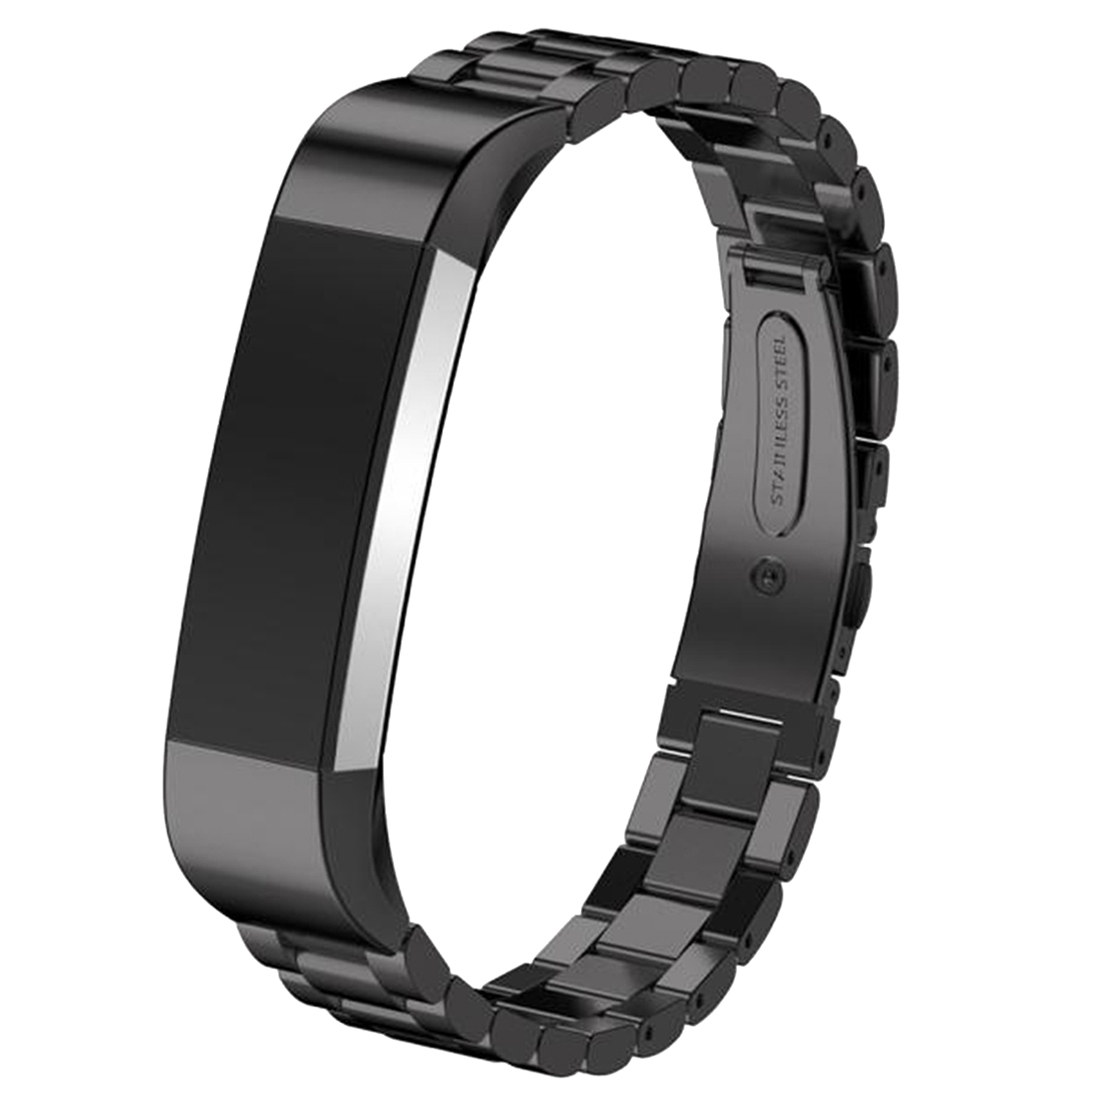 Stainless Steel Watch Band Fitness Tracker Wrist Strap For Fitbit Alta Bracelet Black